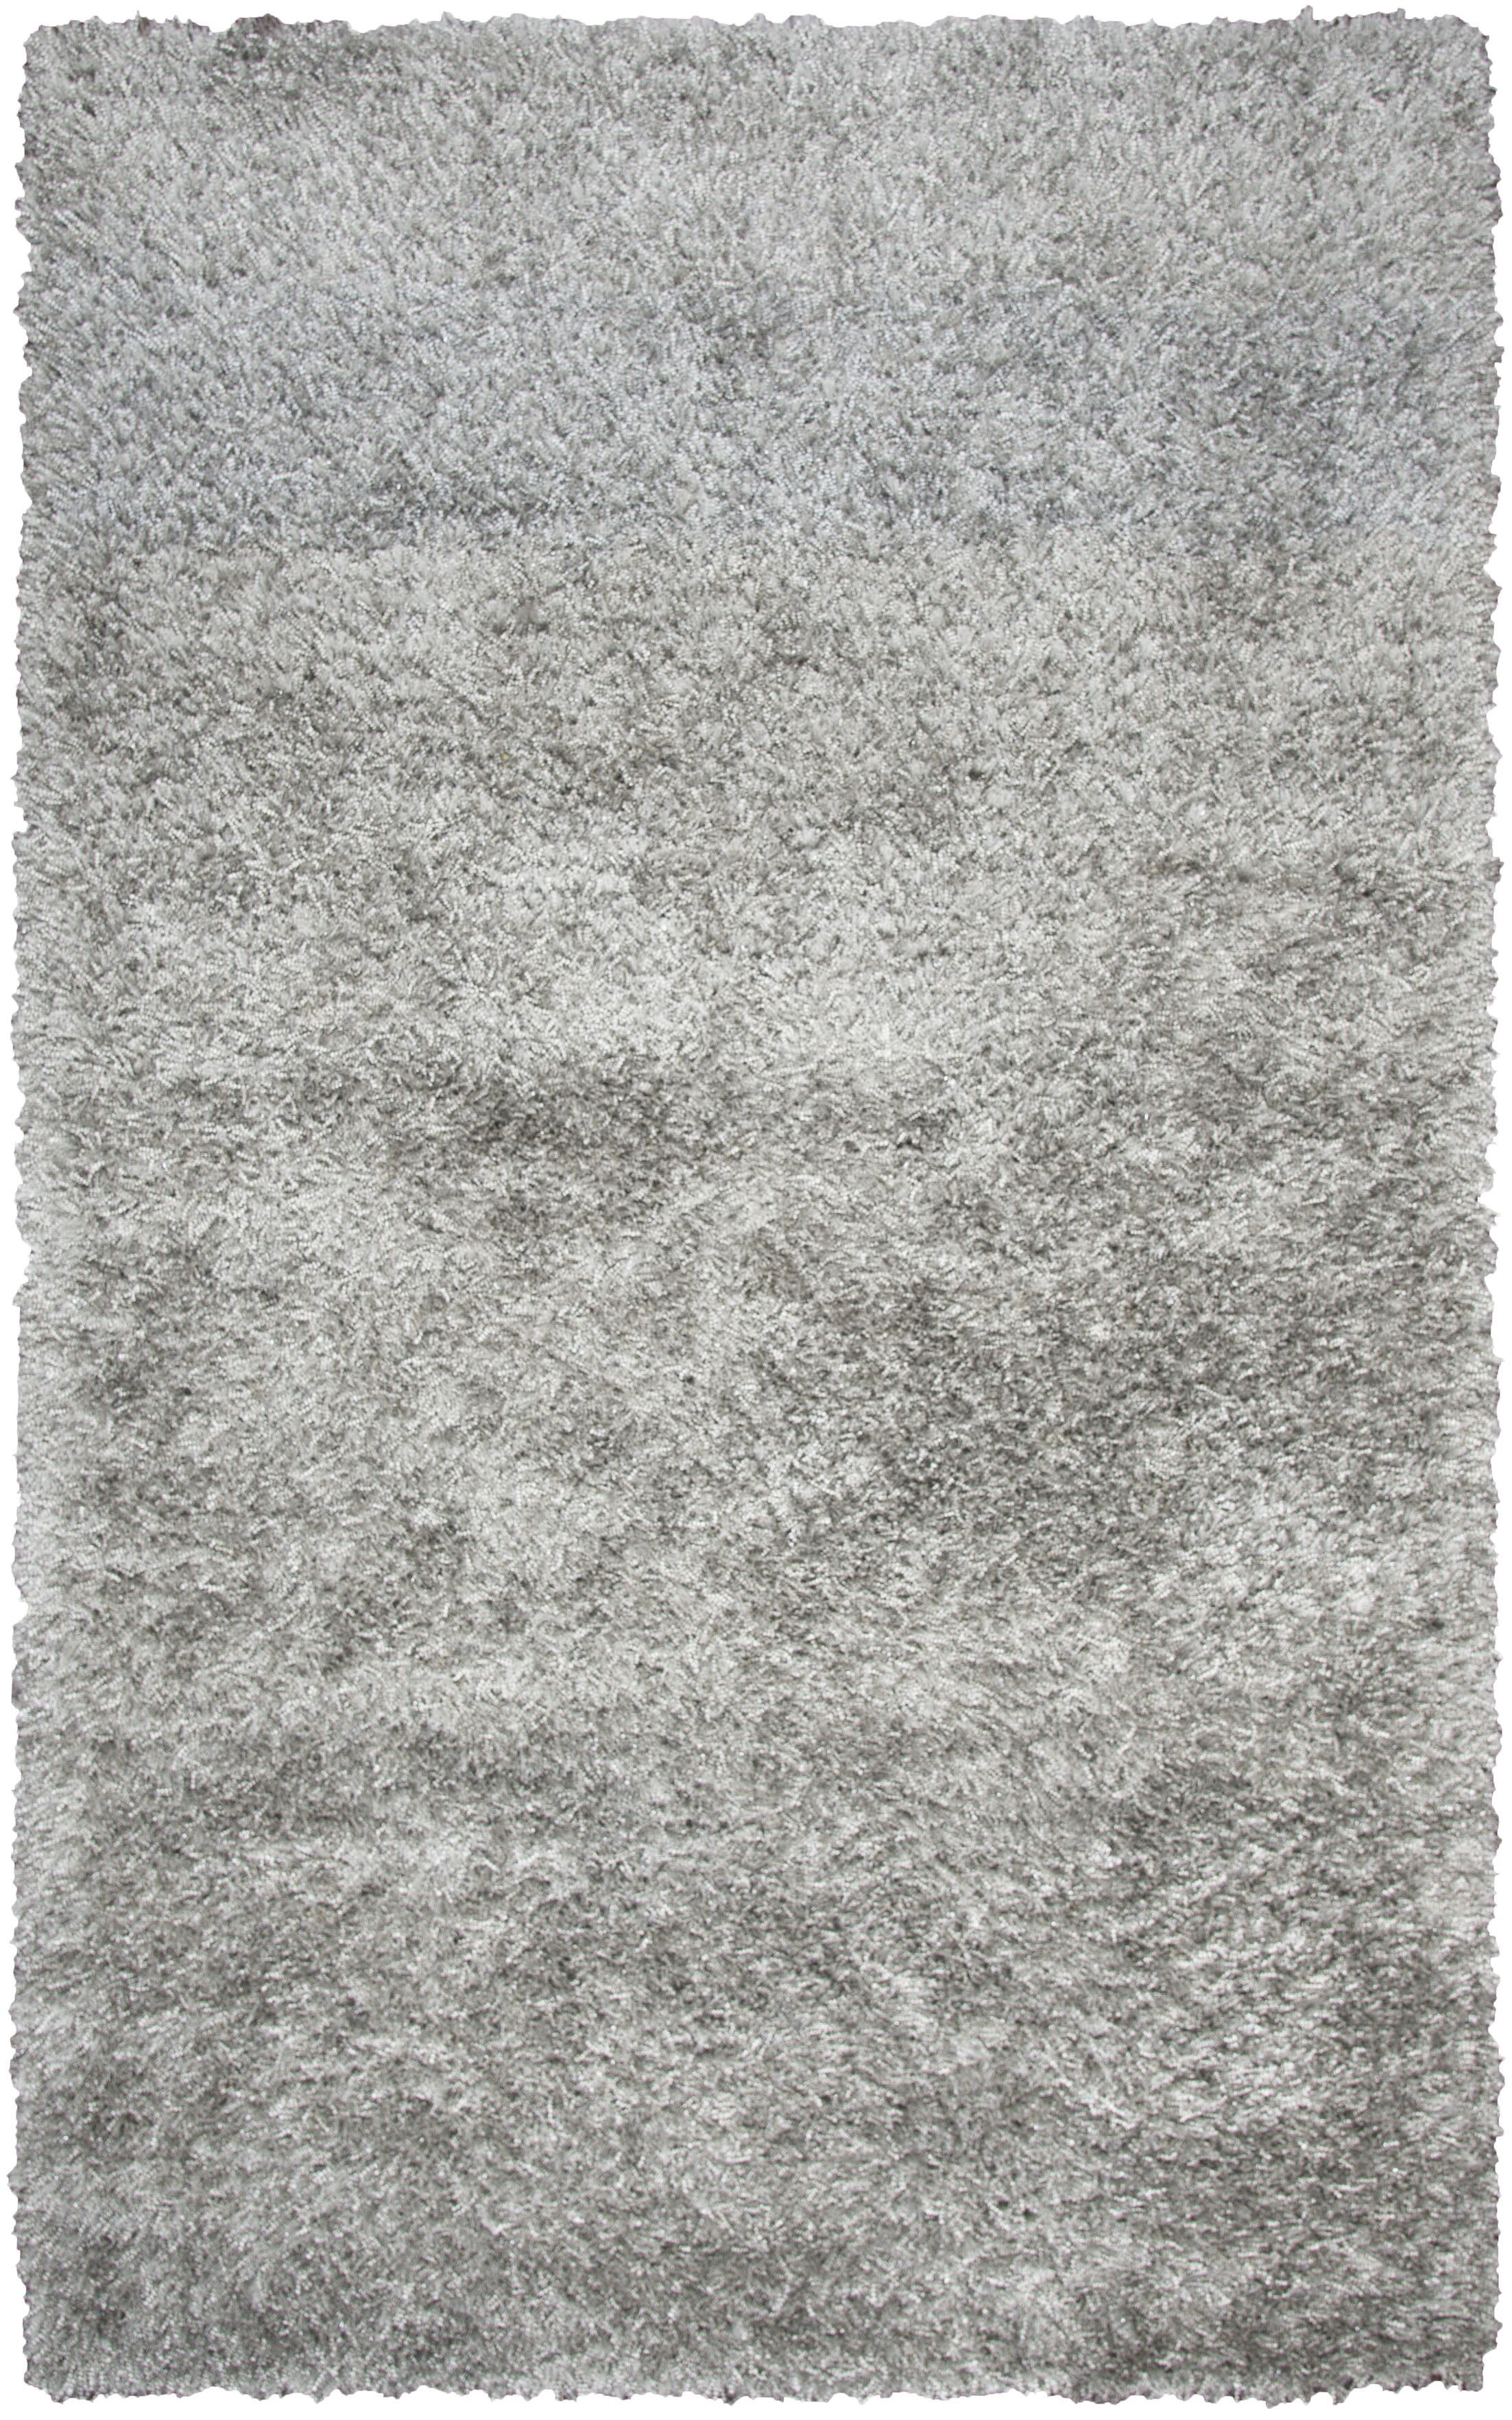 Villegas Hand-Tufted Gray Area Rug Rug Size: Round 3'